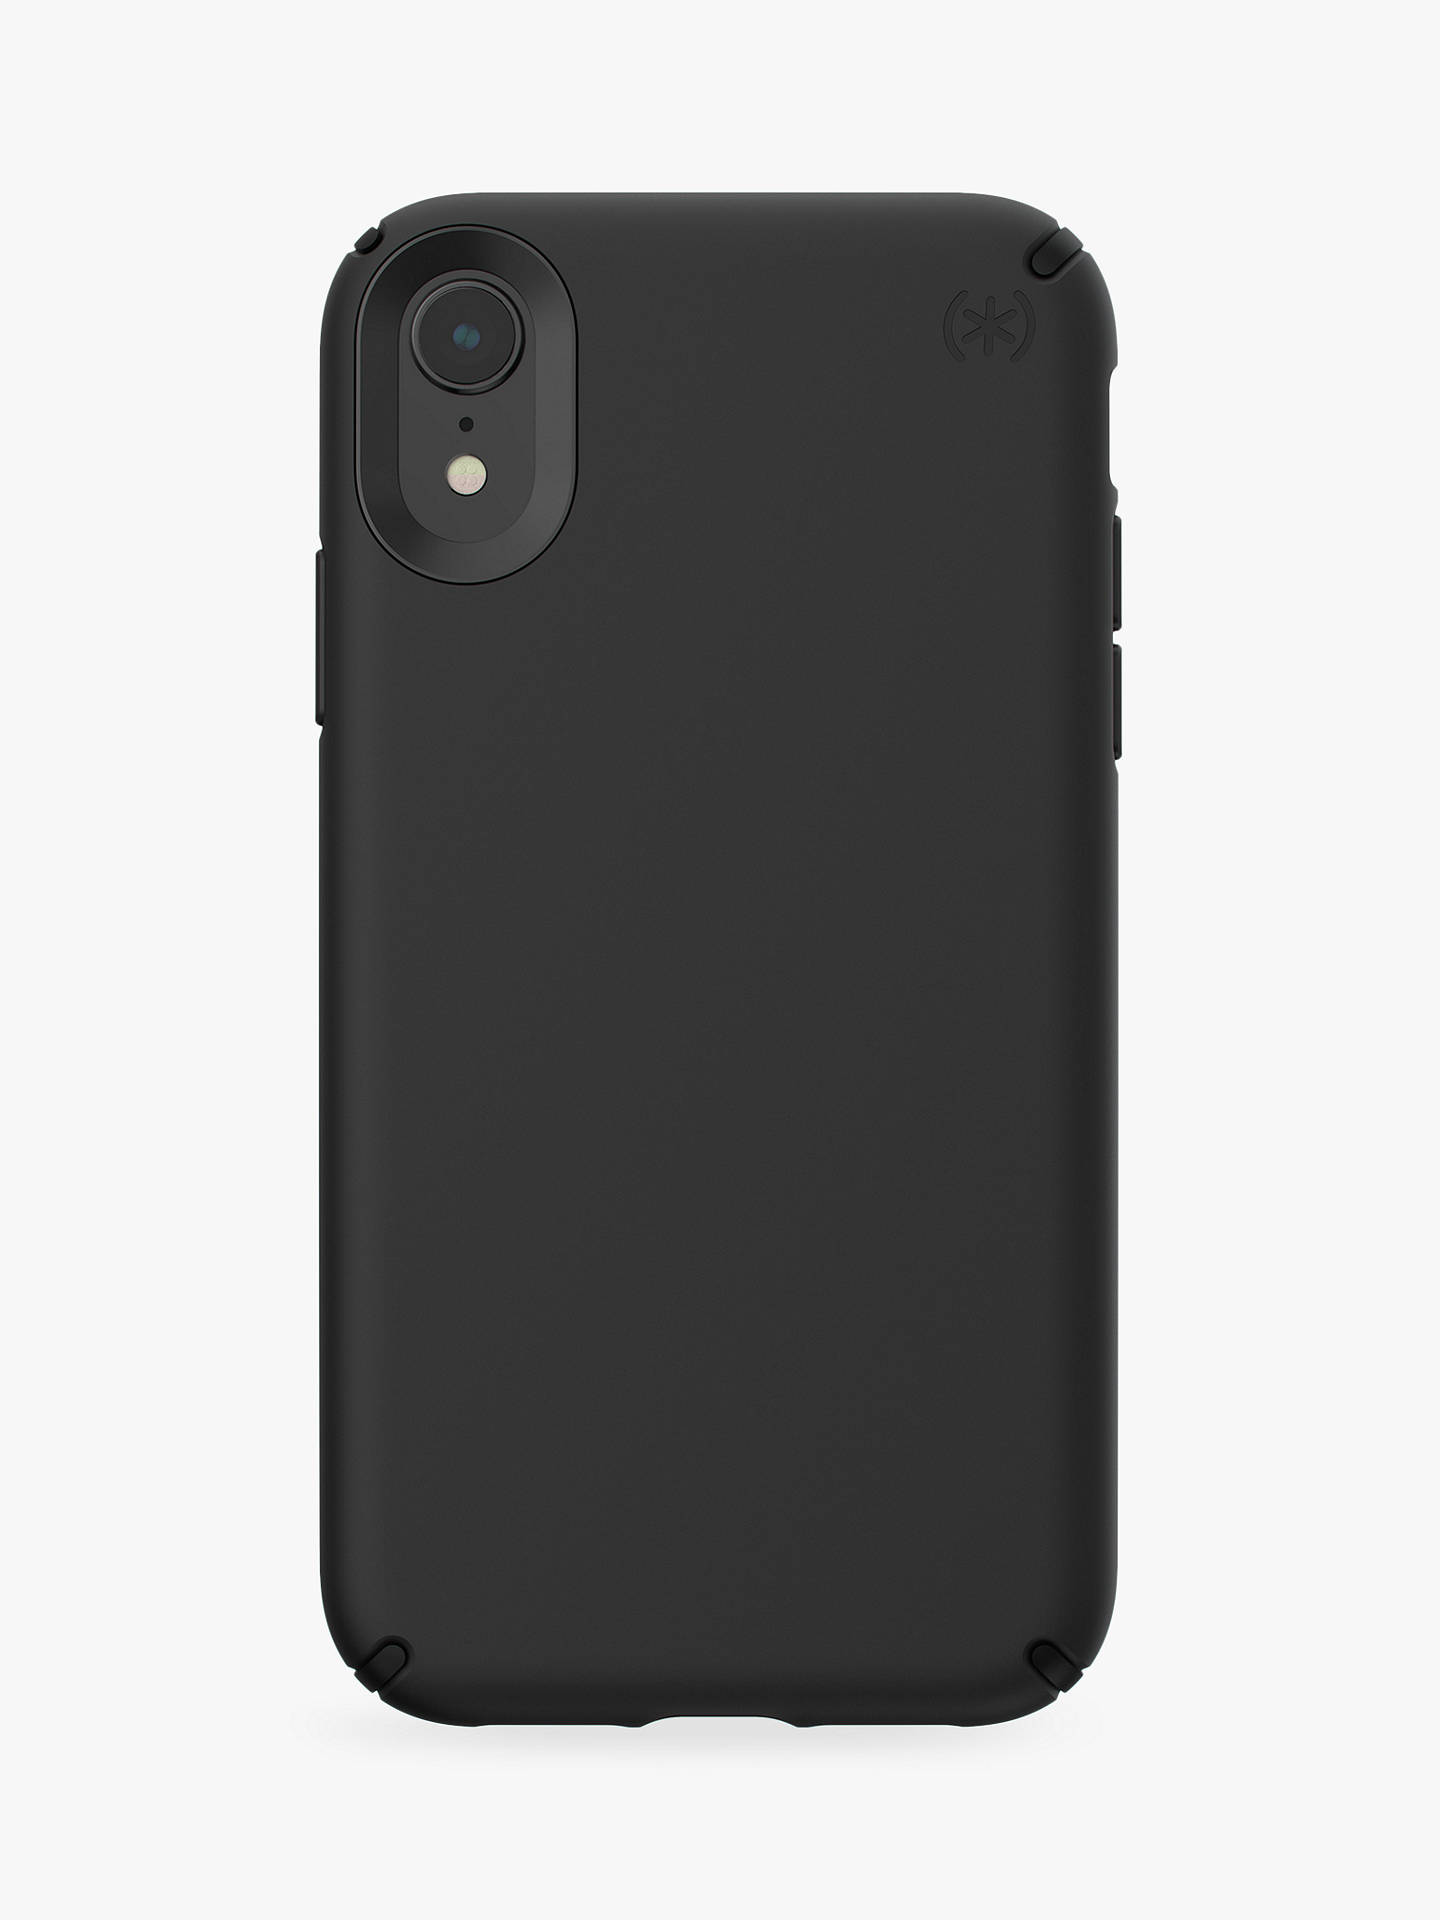 BuySpeck Presidio Pro Case for iPhone XR, Black Online at johnlewis.com